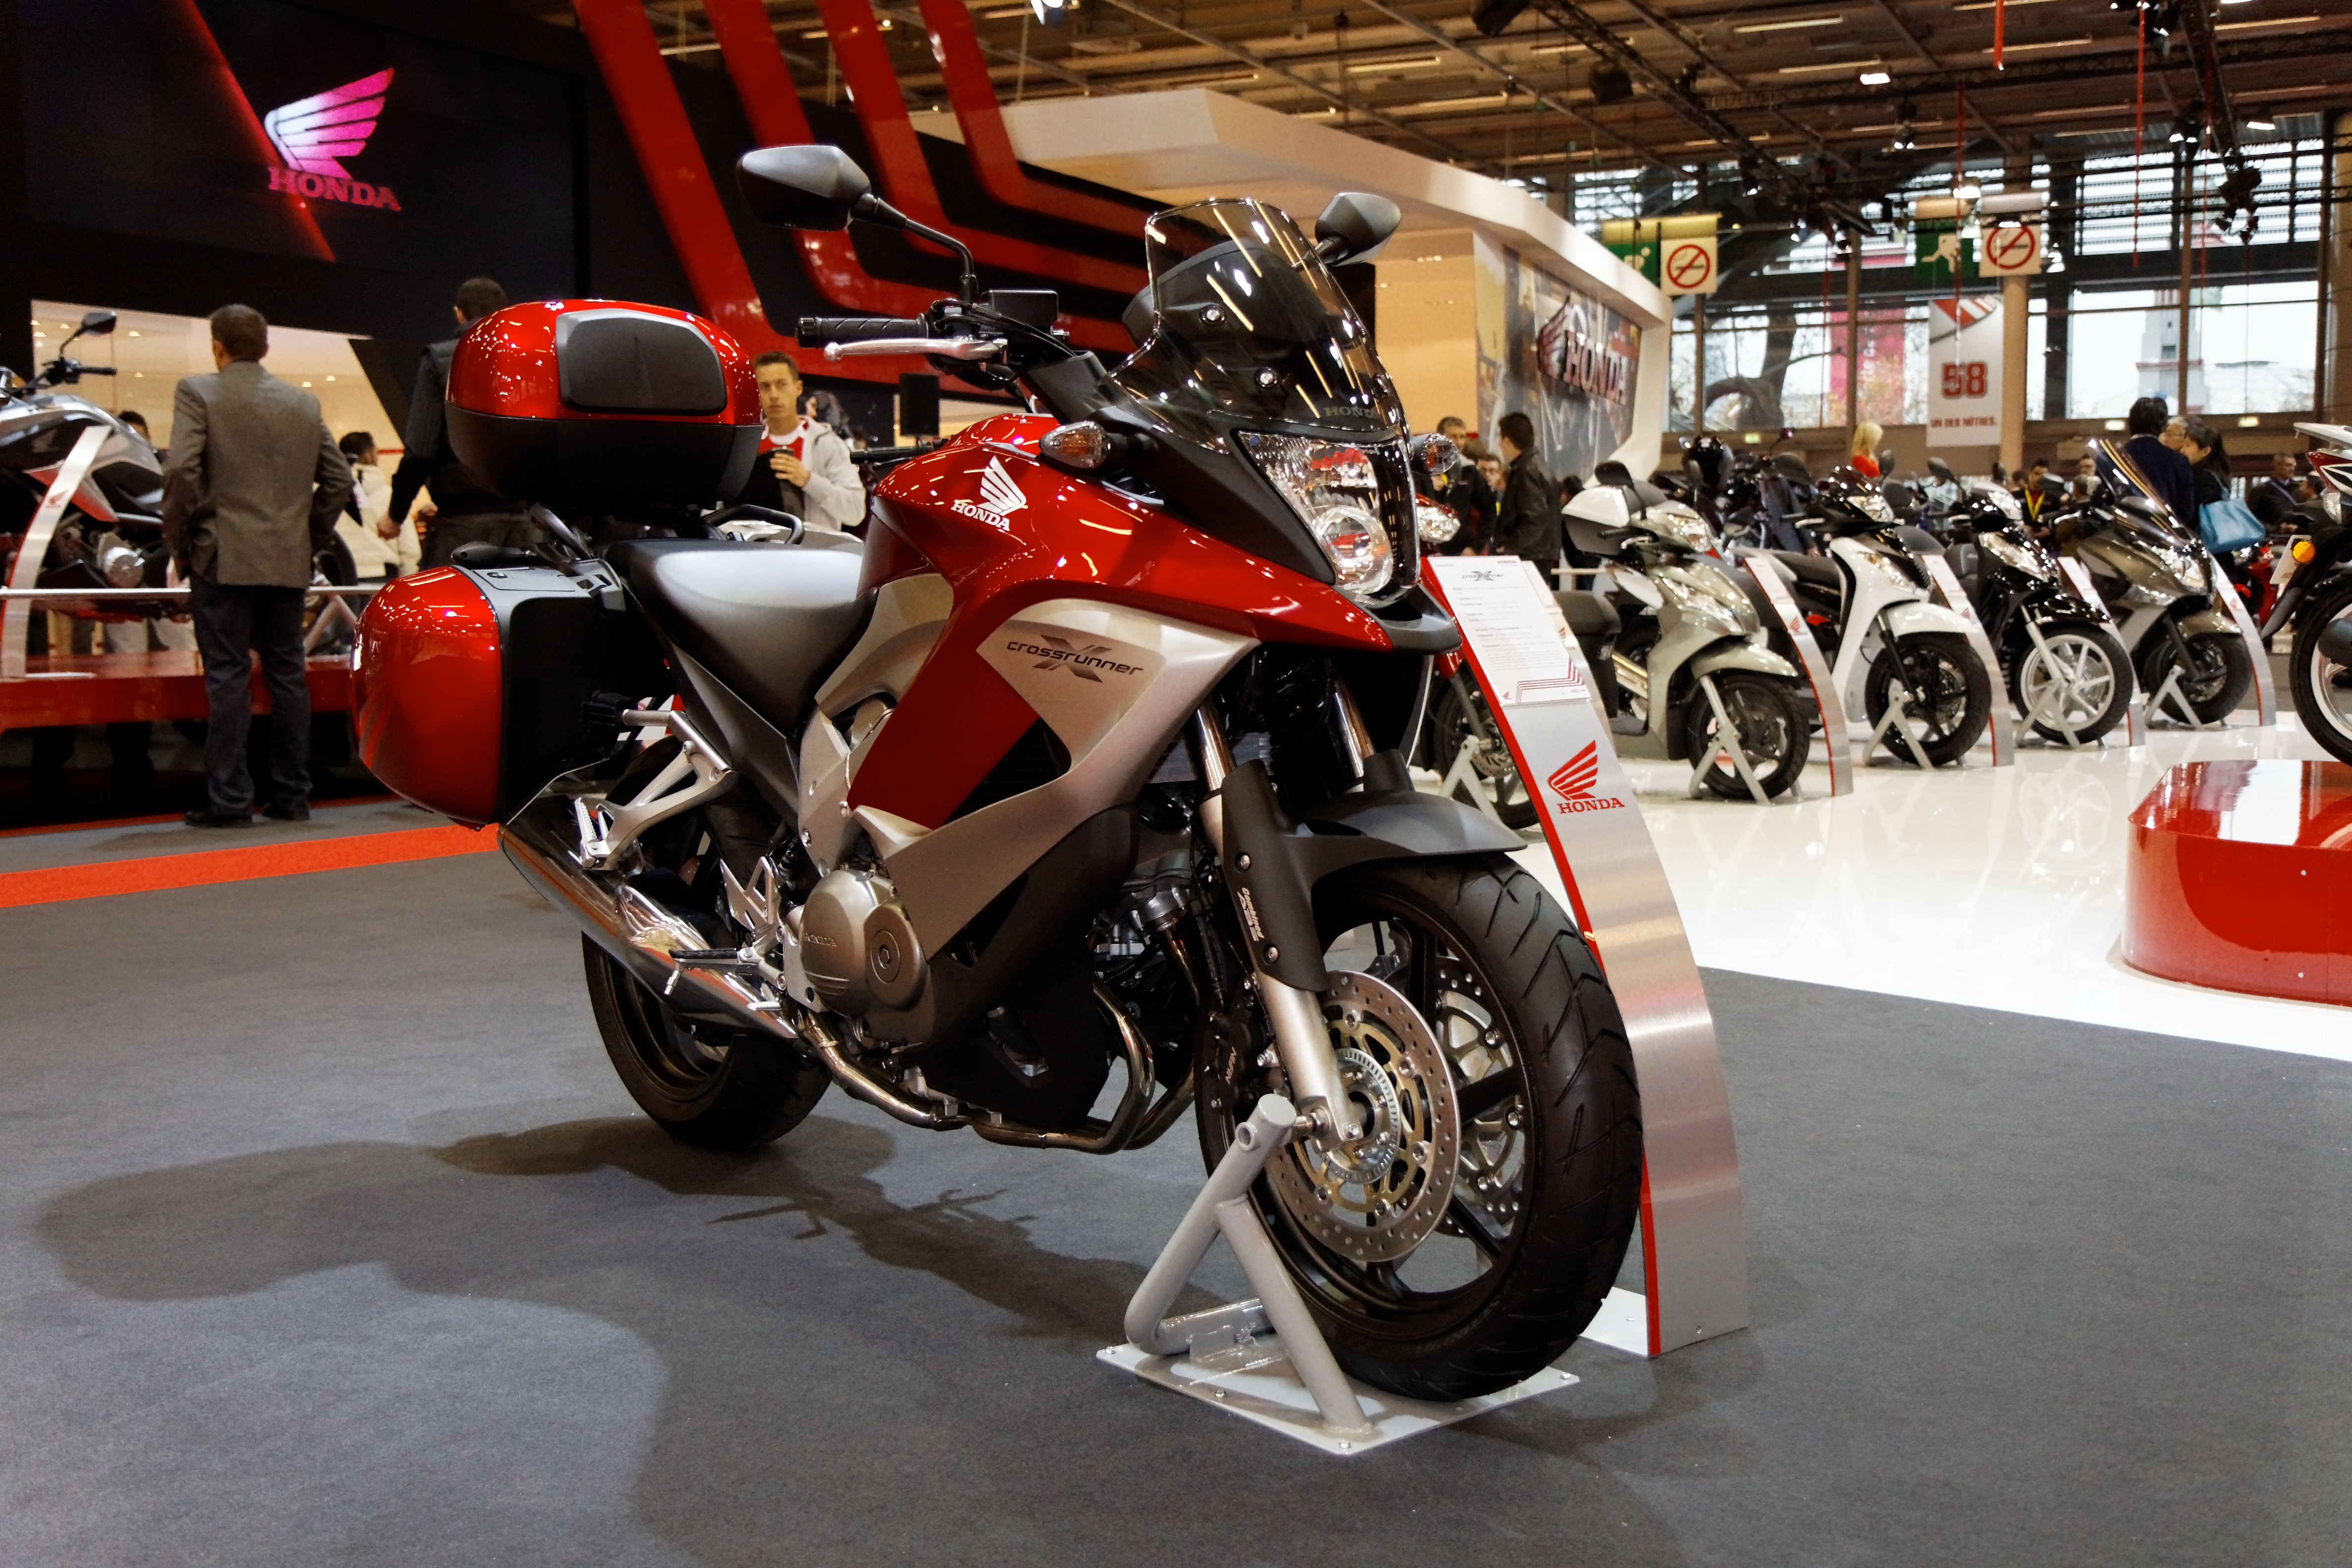 file paris salon de la moto 2011 honda crossrunner. Black Bedroom Furniture Sets. Home Design Ideas